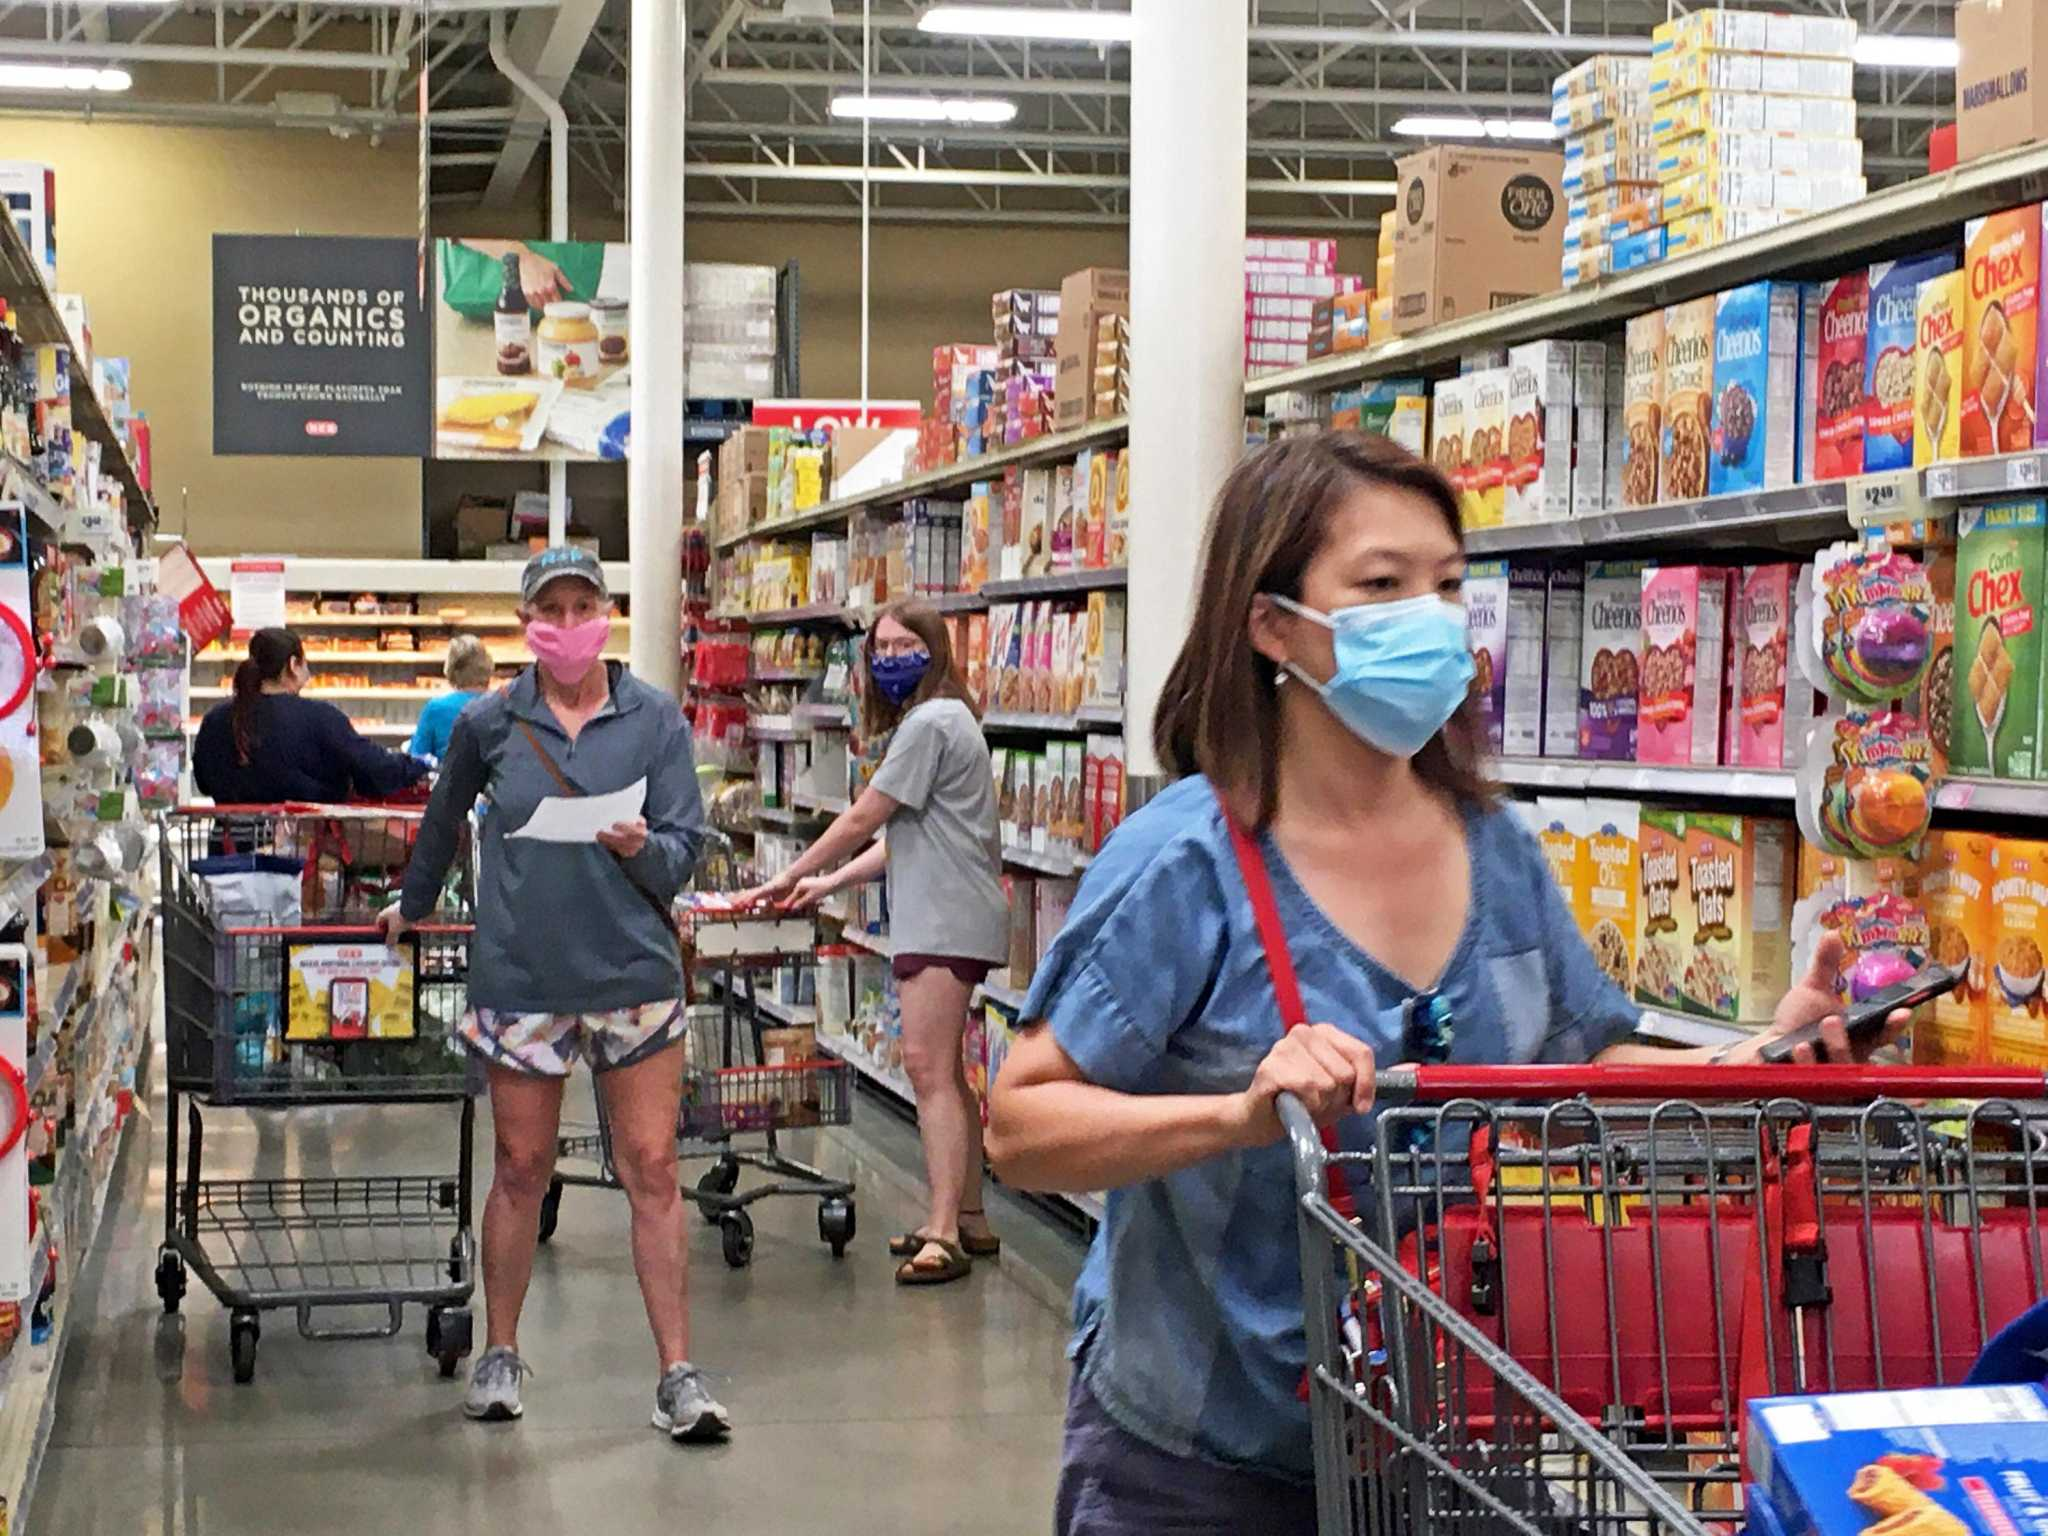 Wearing masks while visiting the Co-op